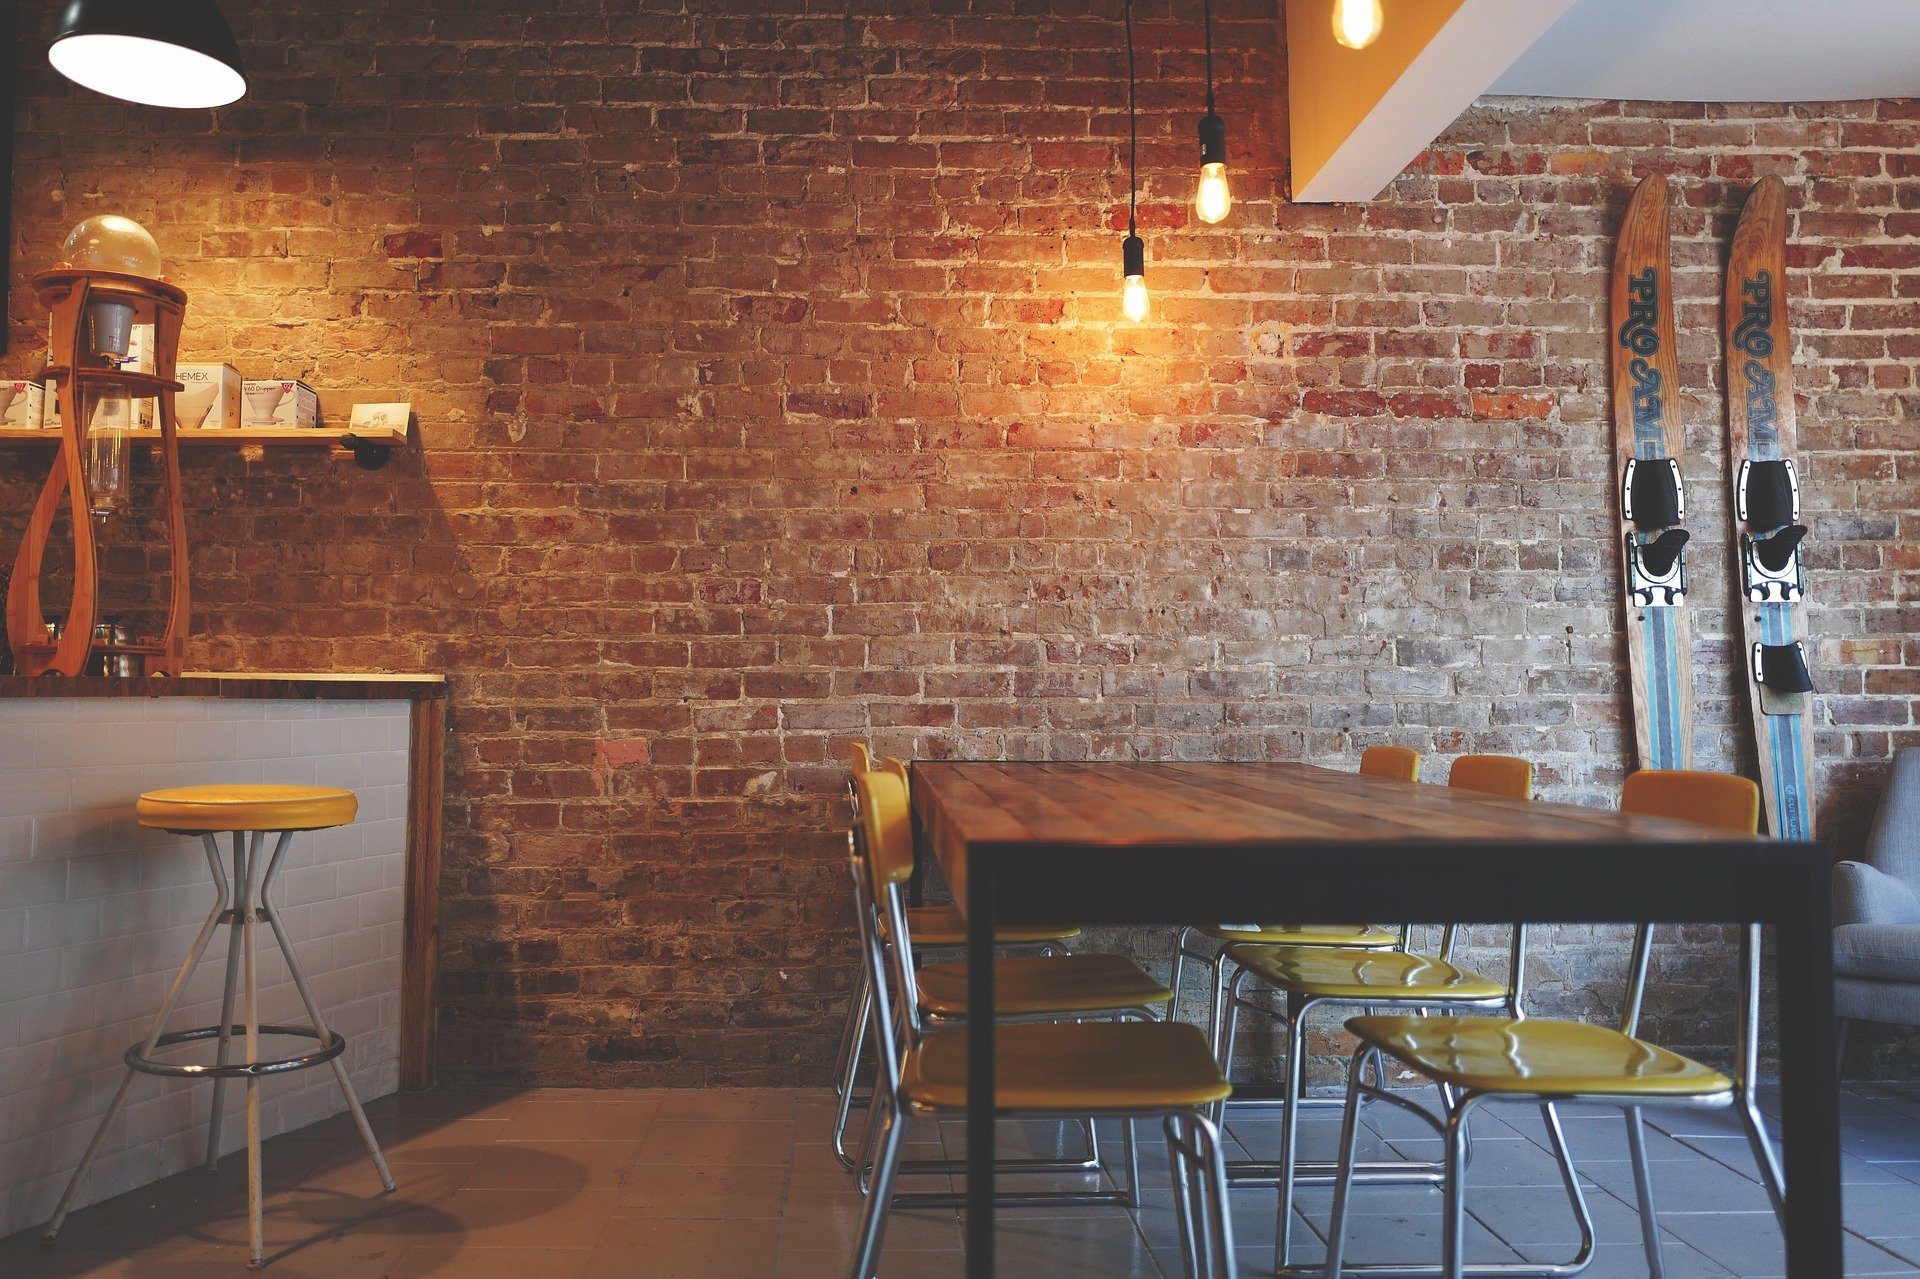 Restaurant Owners: Here's how to renegoitate your lease